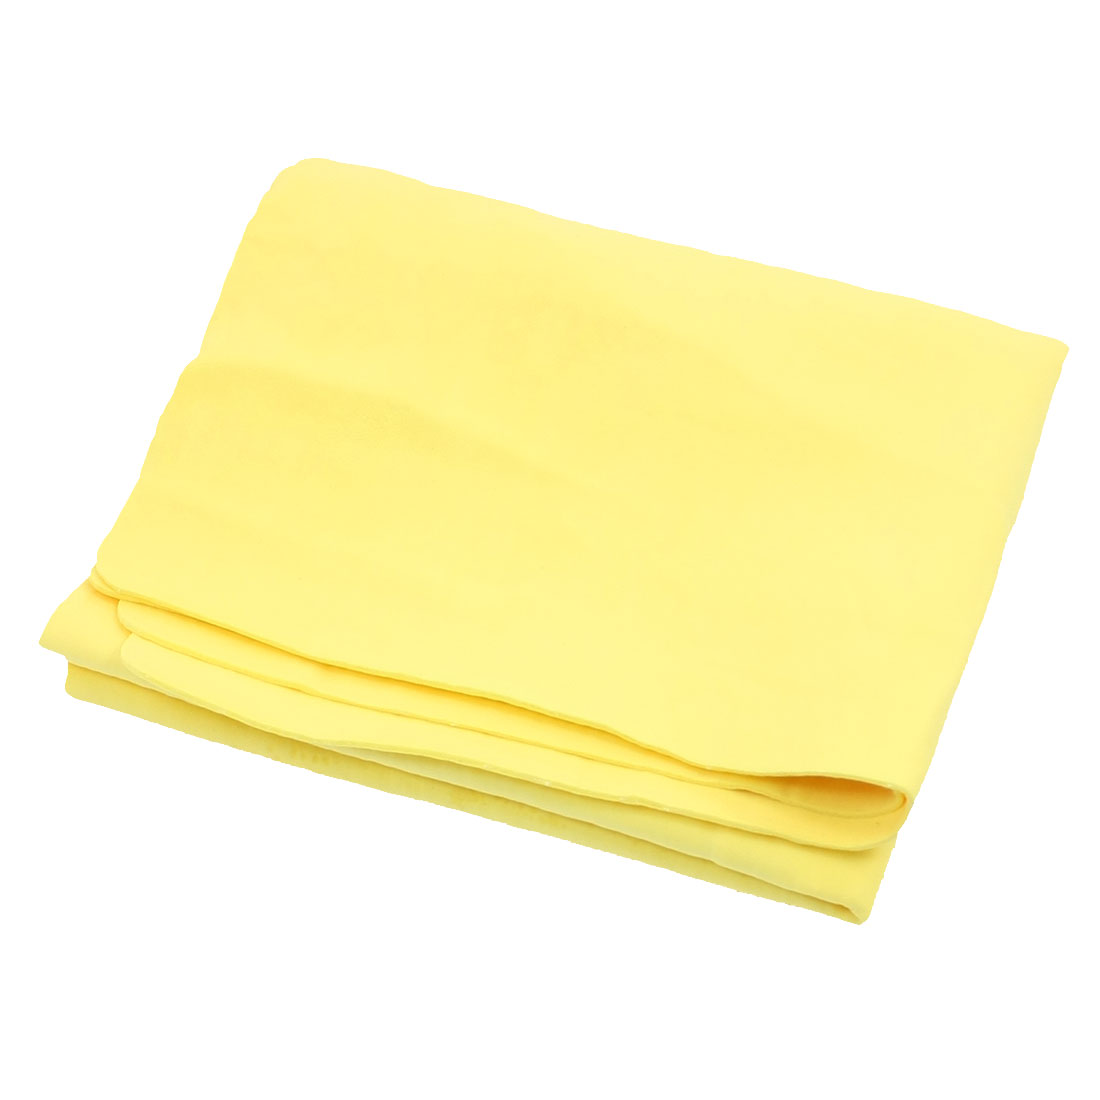 66 x 43cm Furniture Glass Clean Cham Synthetic Chamois Water Absorb Towel Yellow